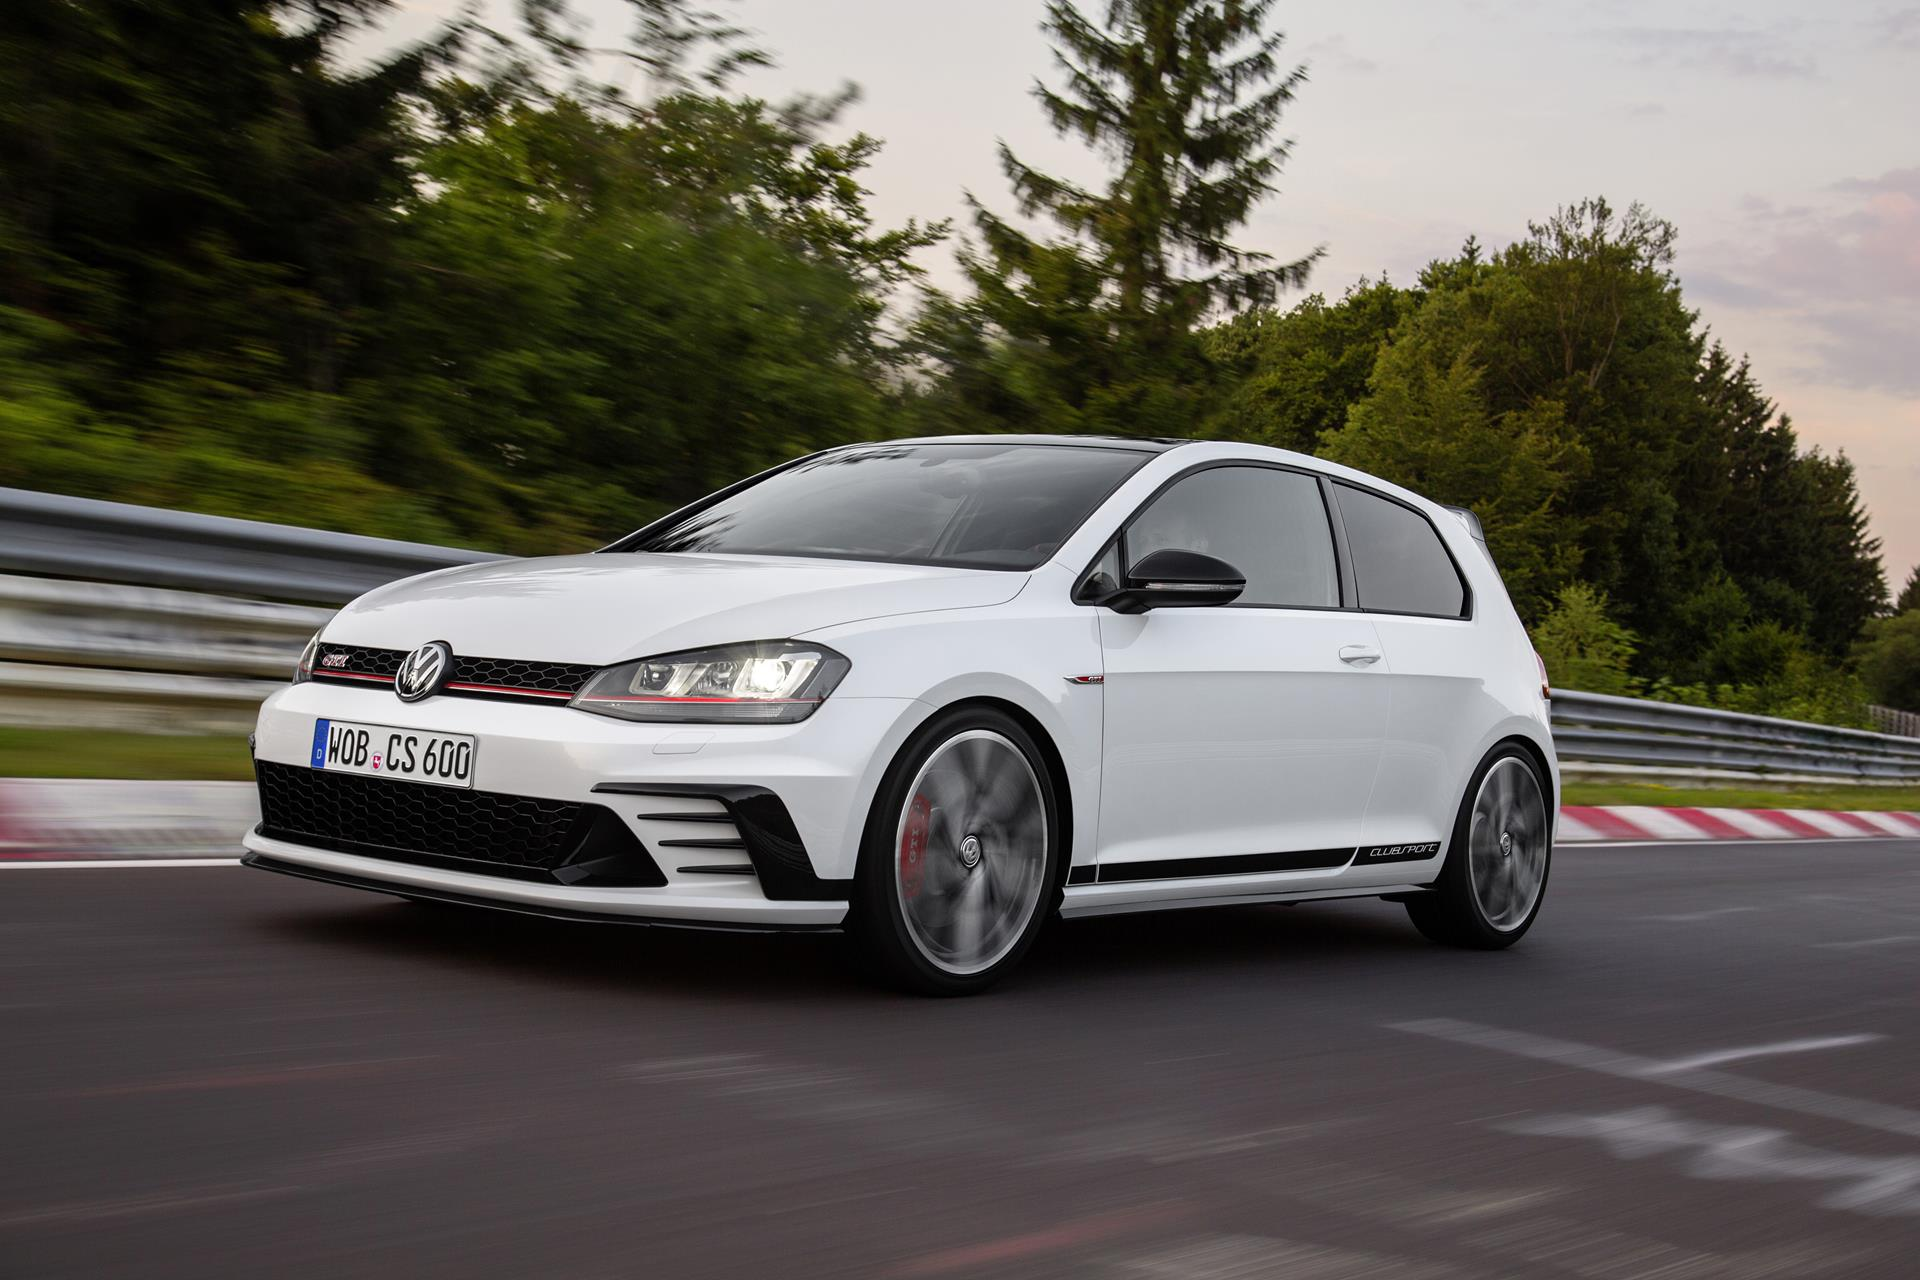 2016 volkswagen golf gti clubsport edition 40 news and information. Black Bedroom Furniture Sets. Home Design Ideas